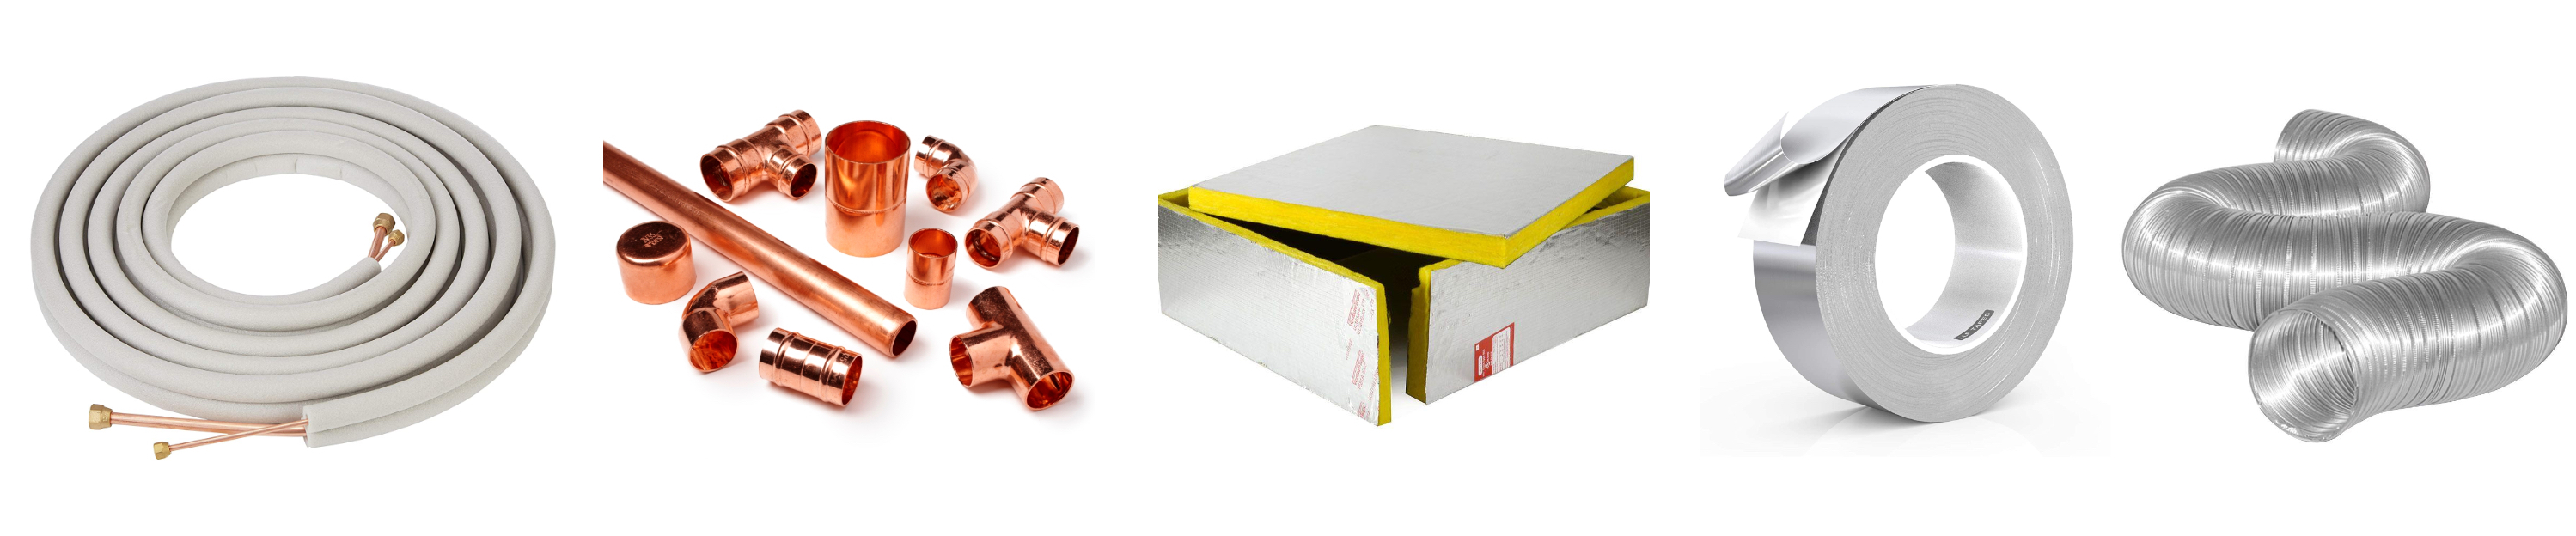 group of HVACR supplies, tubing, tape, copper fittings, insulation